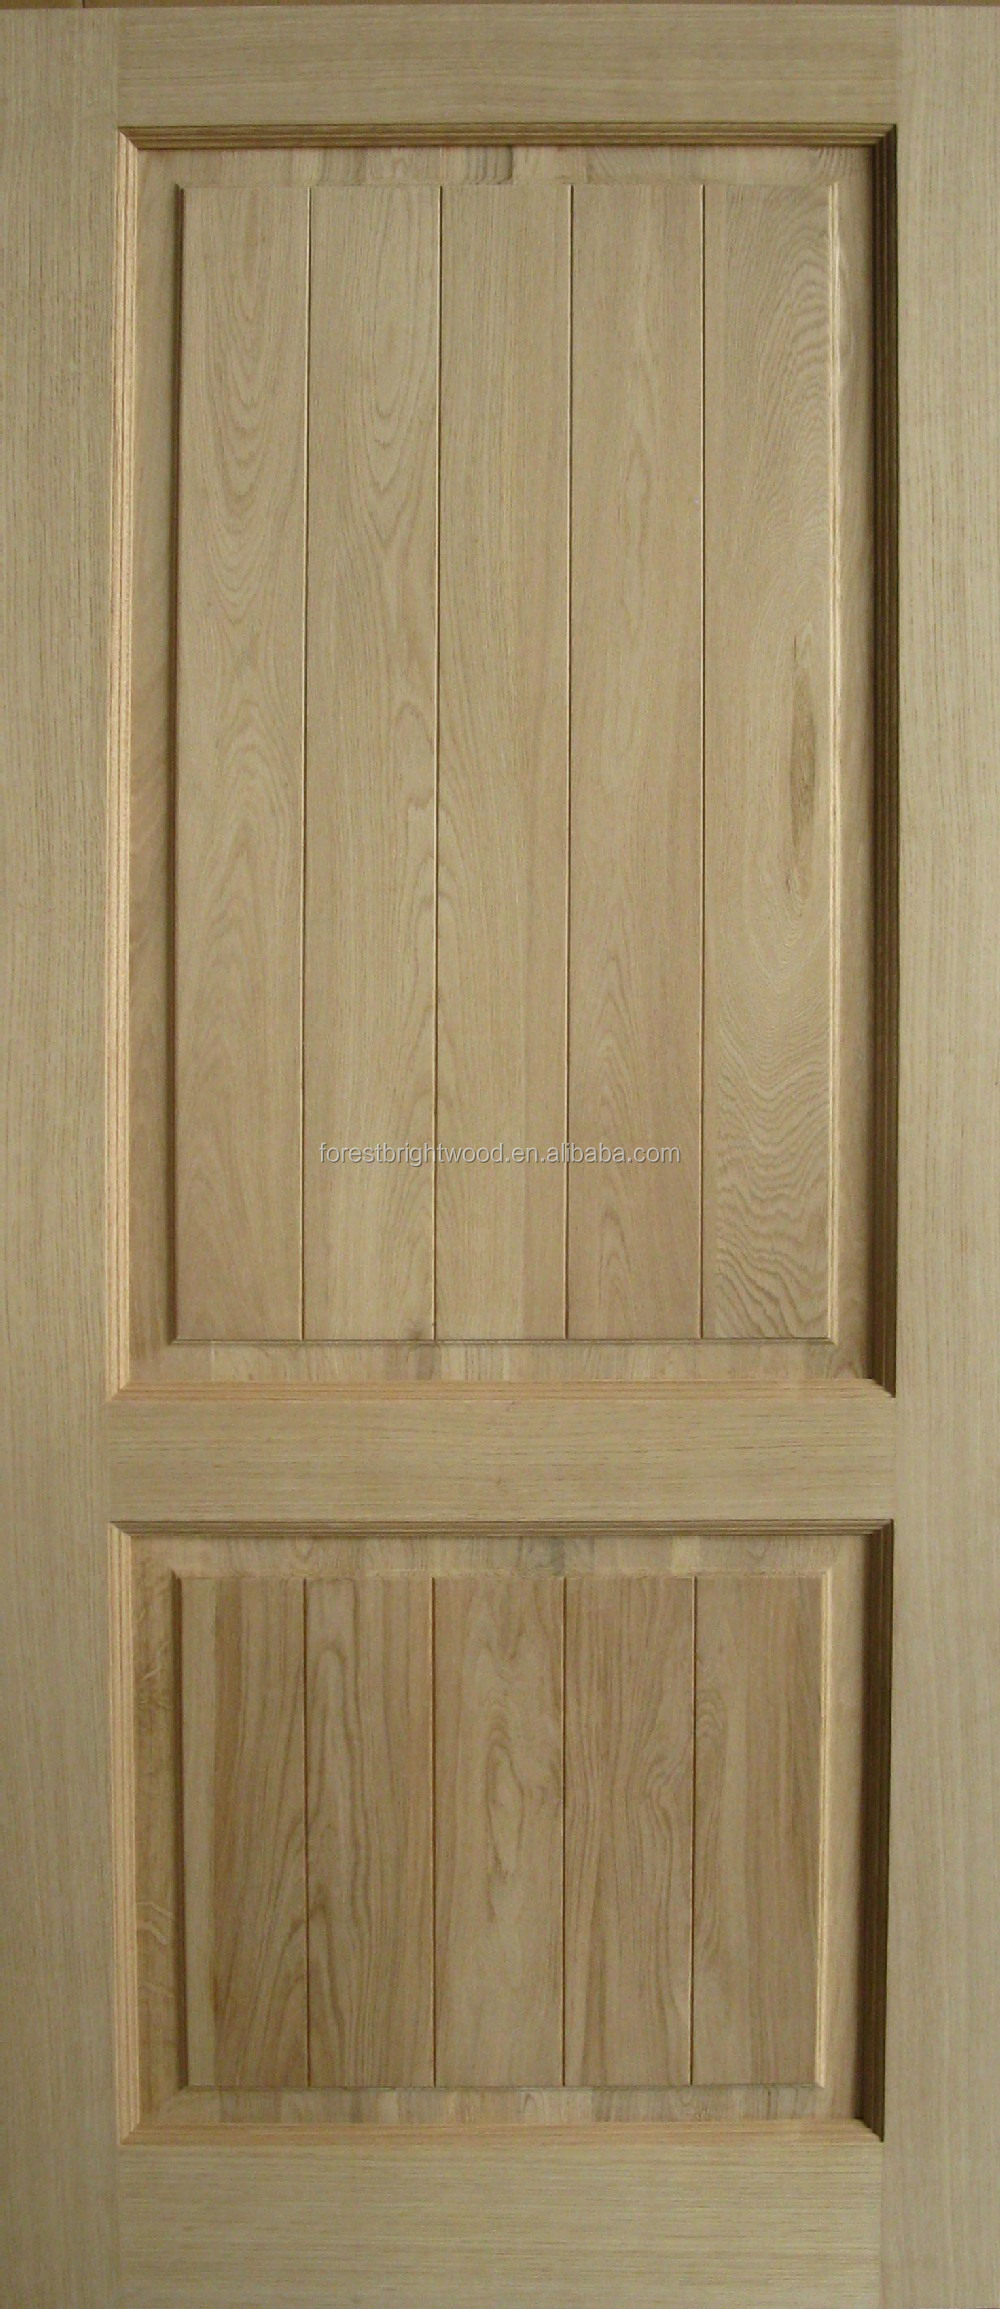 Pvc kitchen cabinet in hyderabad telangana india indiamart - Solid Wood Core Laminated With Mdf Indian Style Wooden Doors